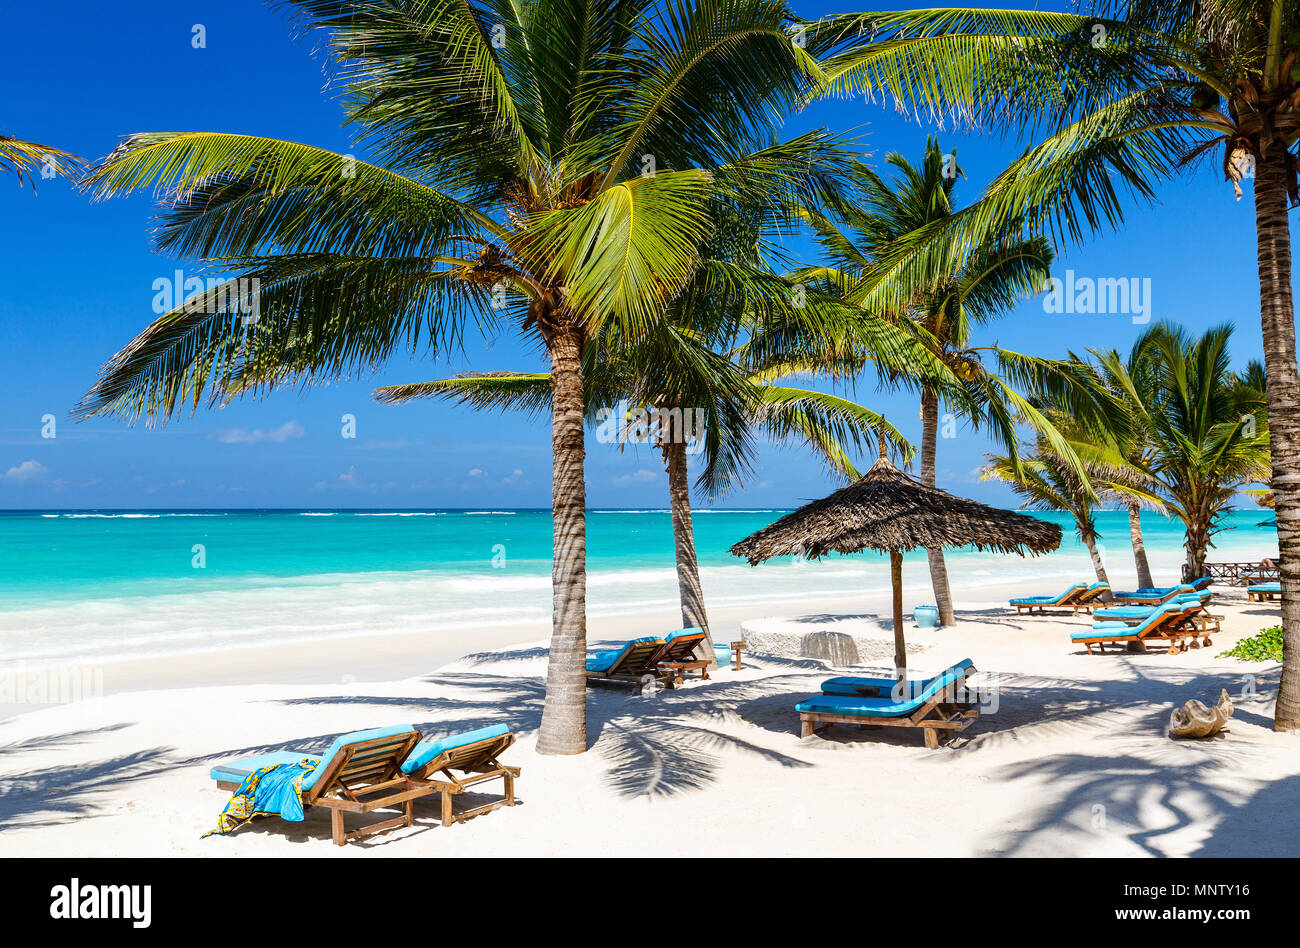 fd1c61429dc19 Beach beds among palm trees at perfect tropical coast Stock Photo ...